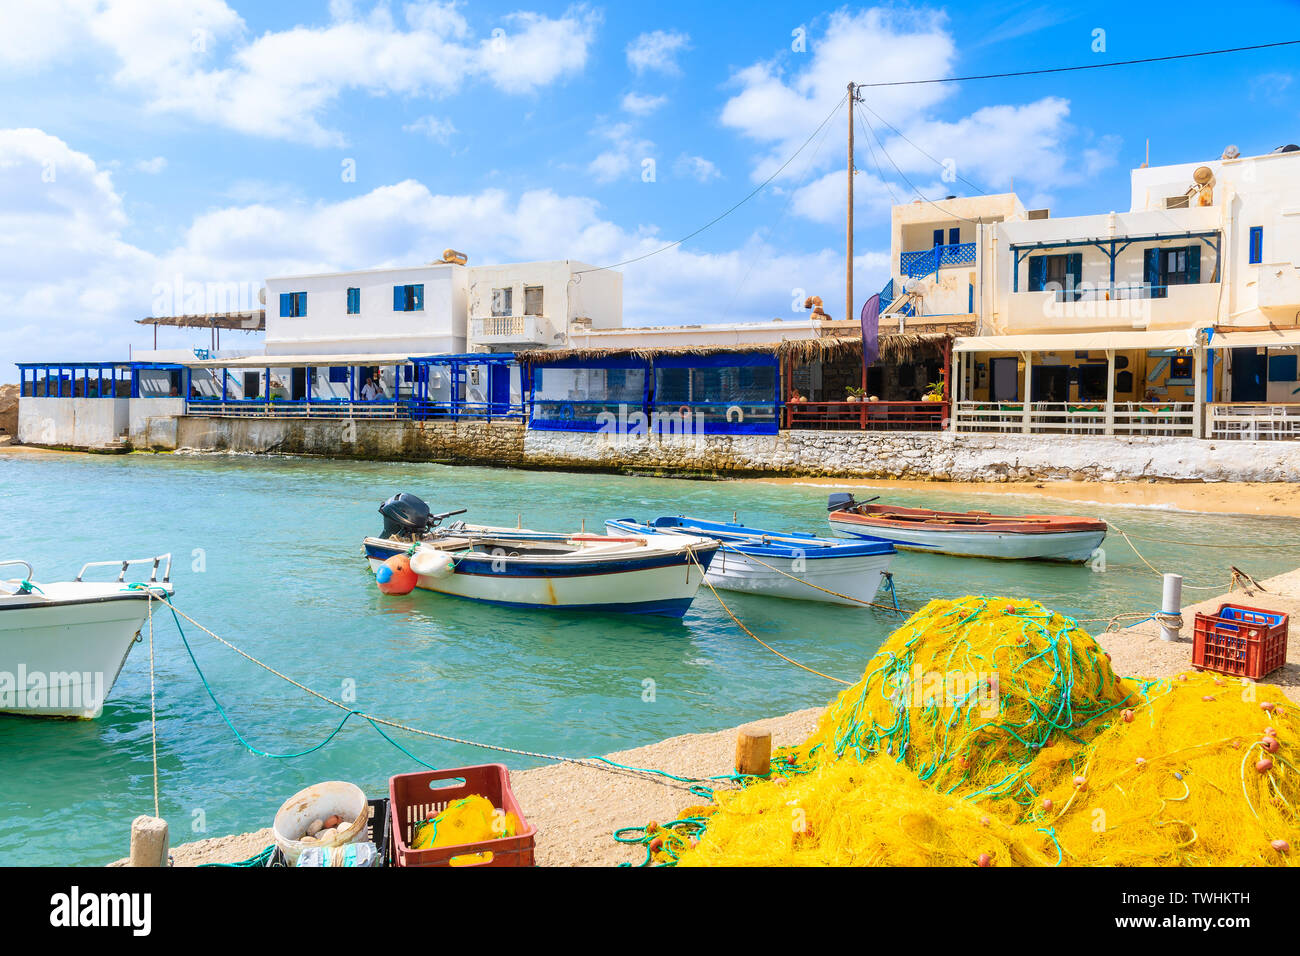 Fishing boats in Lefkos port with tavernas in background, Karpathos island, Greece Stock Photo